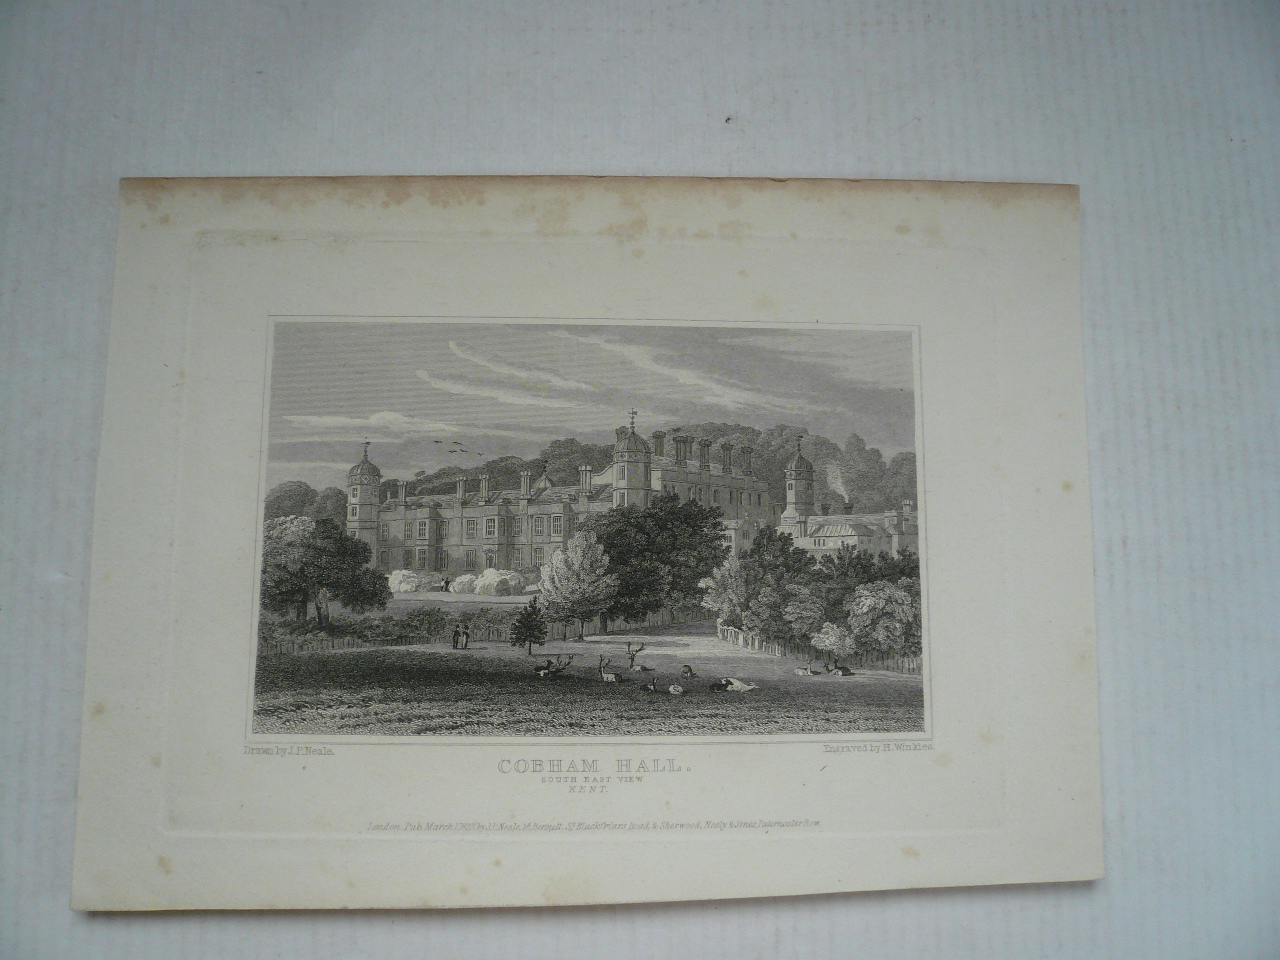 Cobham Hall, Kent, anno 1850, steelengraving